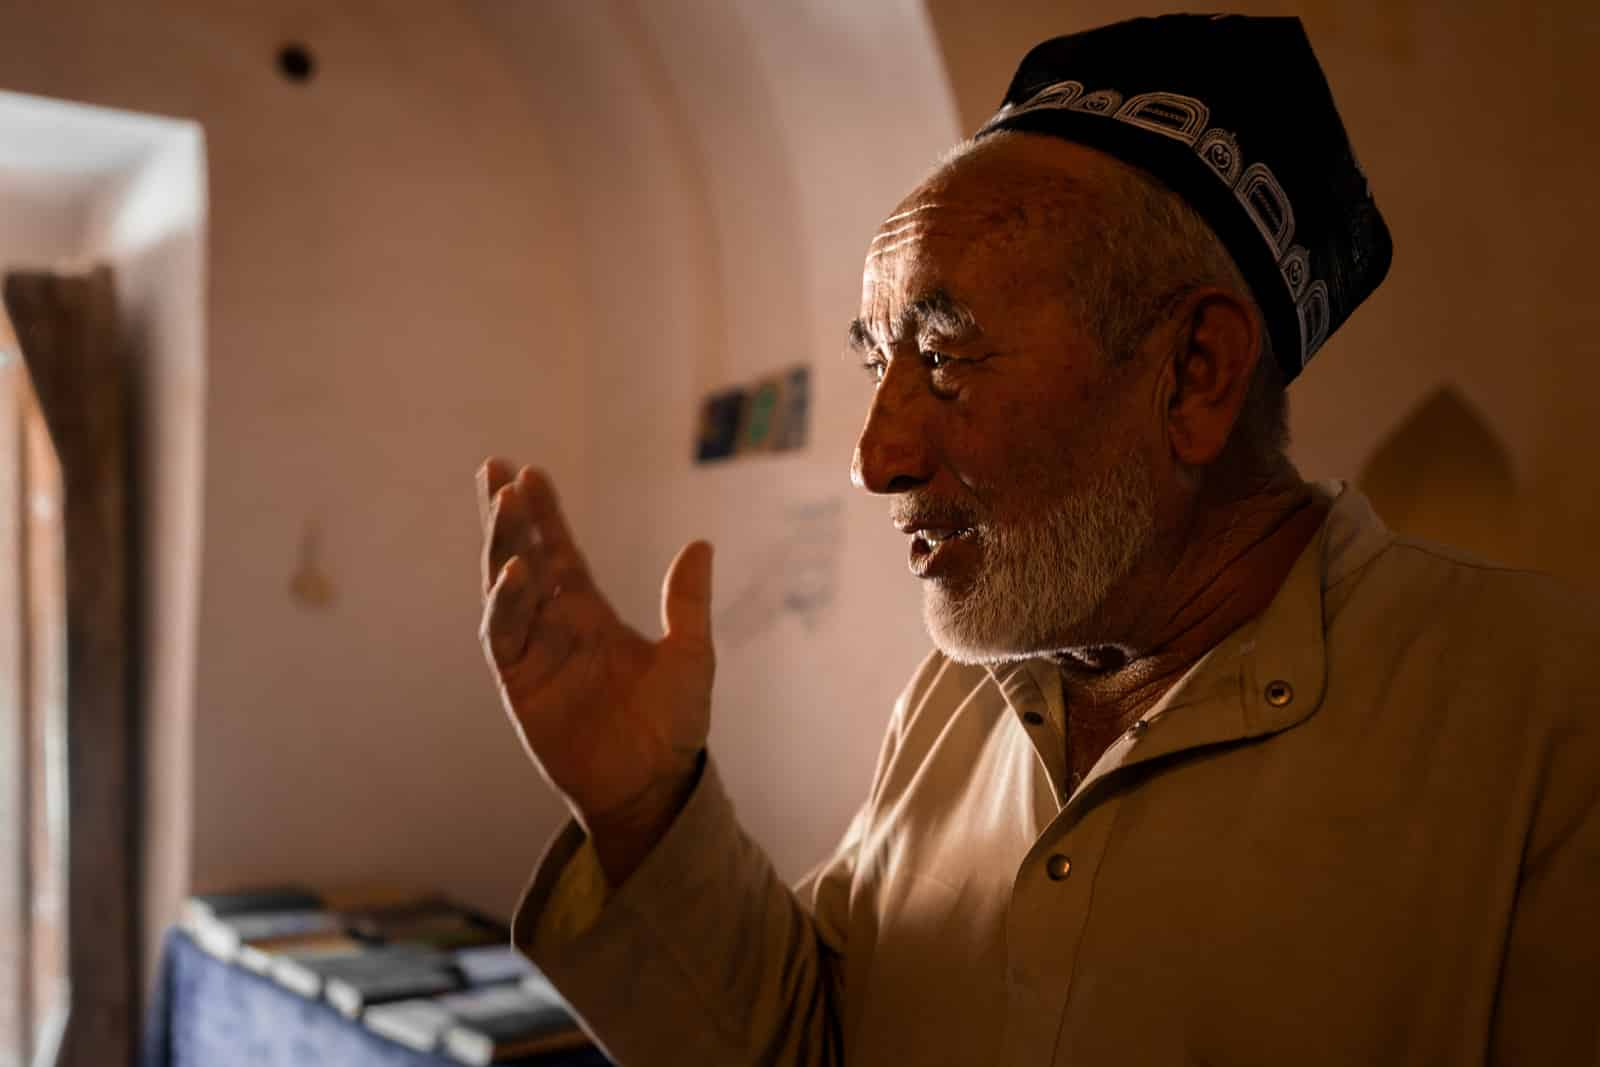 Caretaker of the mausoleum of Mohammed Bushoro in Mazari Sharif, Tajikistan